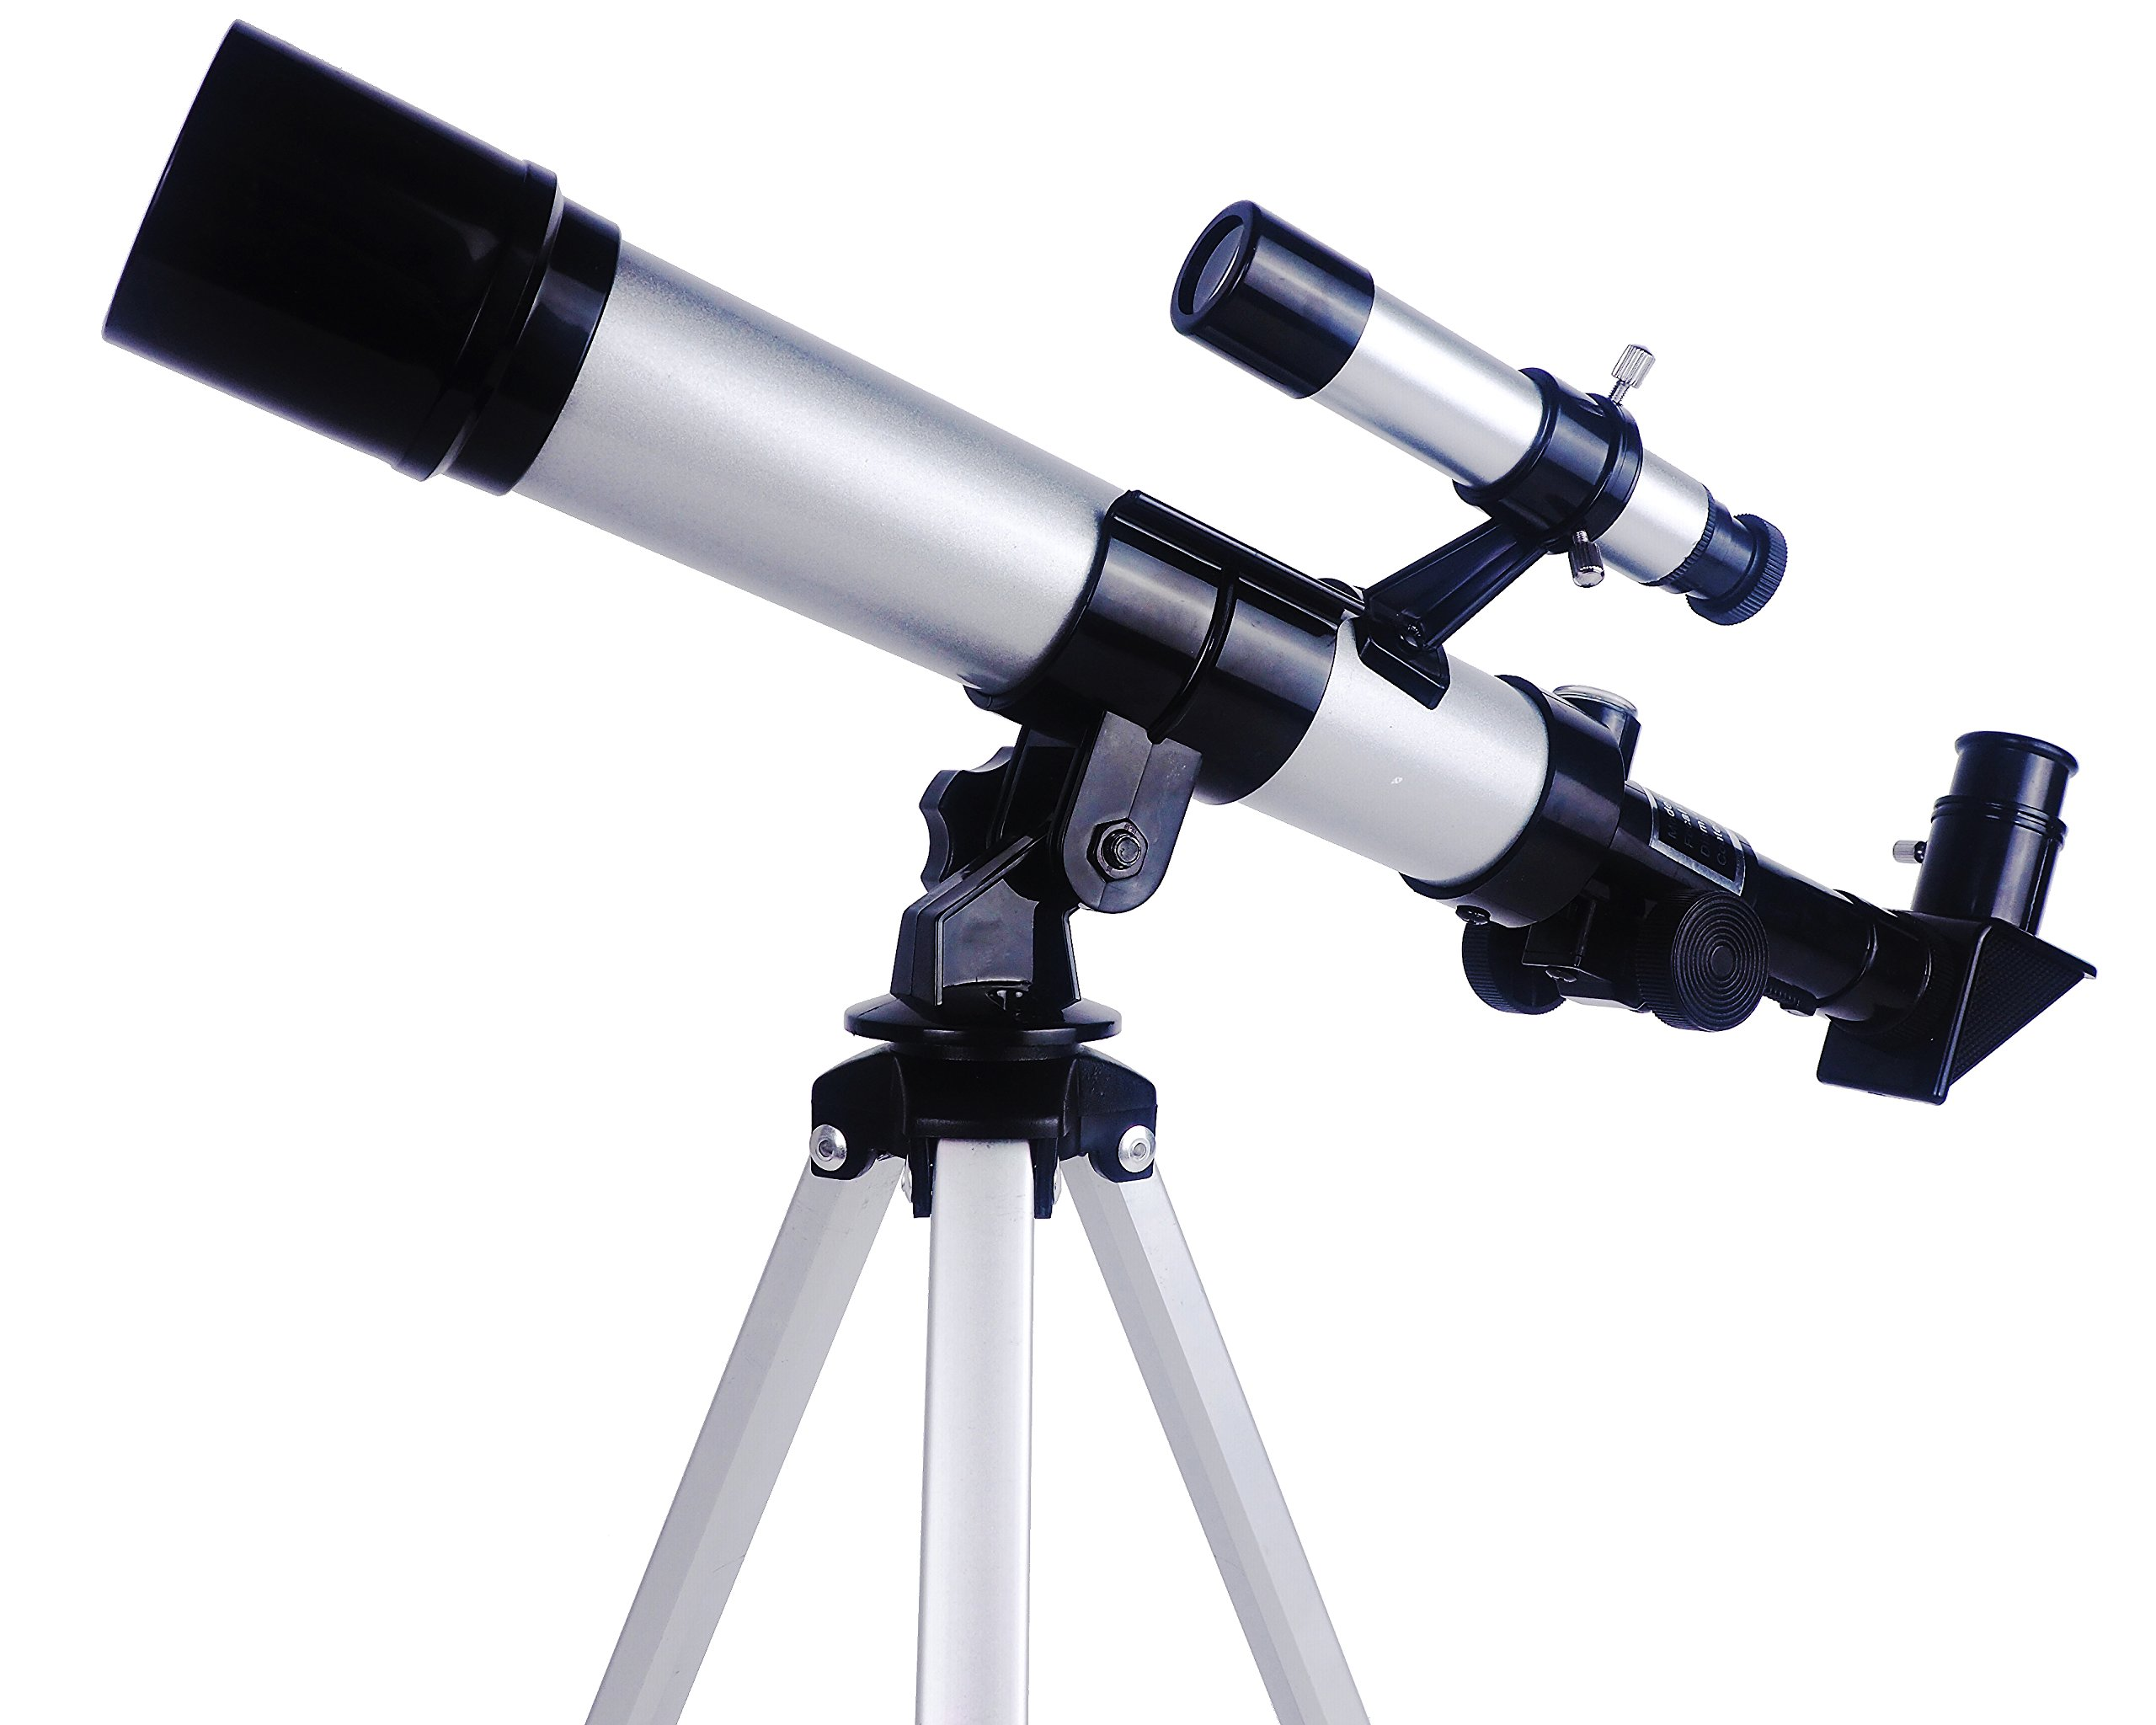 YA BEI SHANGMAO Children's Telescope, Nature Exploration Toys, Children's Astronomical Science Kit,Telescope, Aluminum Tripod, Beginner Telescope & Portable Telescope, Science Toys by YA BEI SHANGMAO